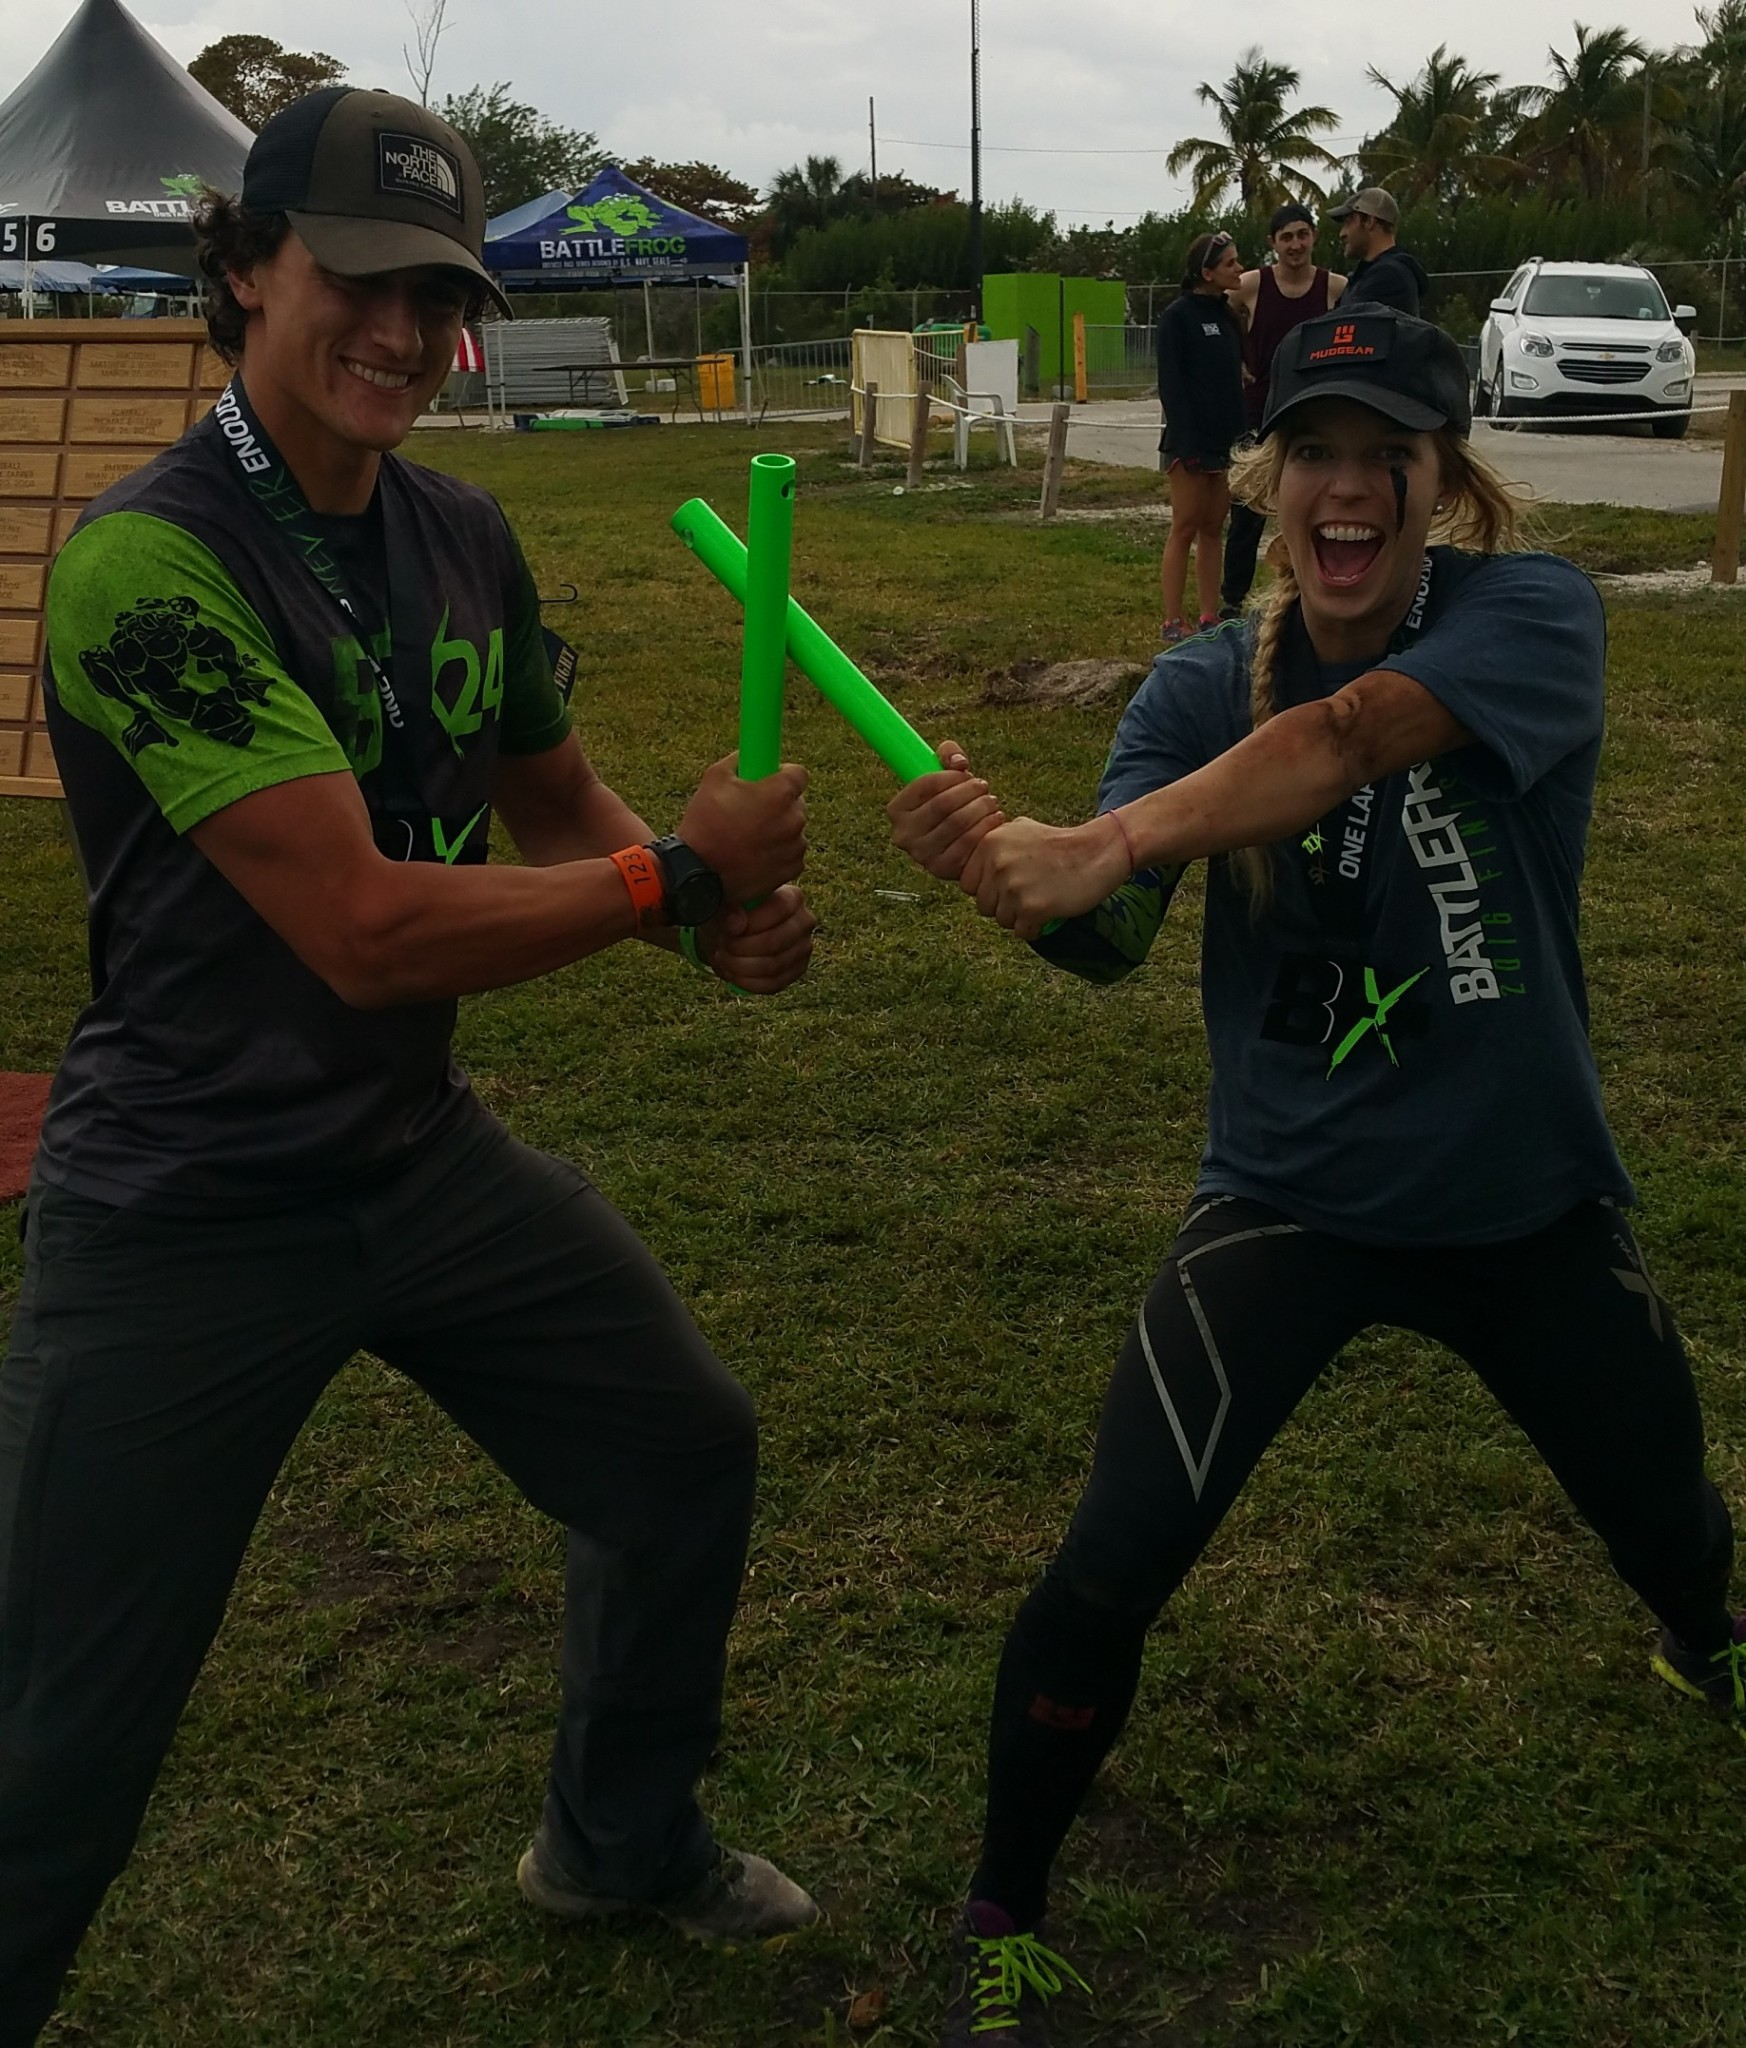 BattleFrog 24hr - King and Queen of the Rigs